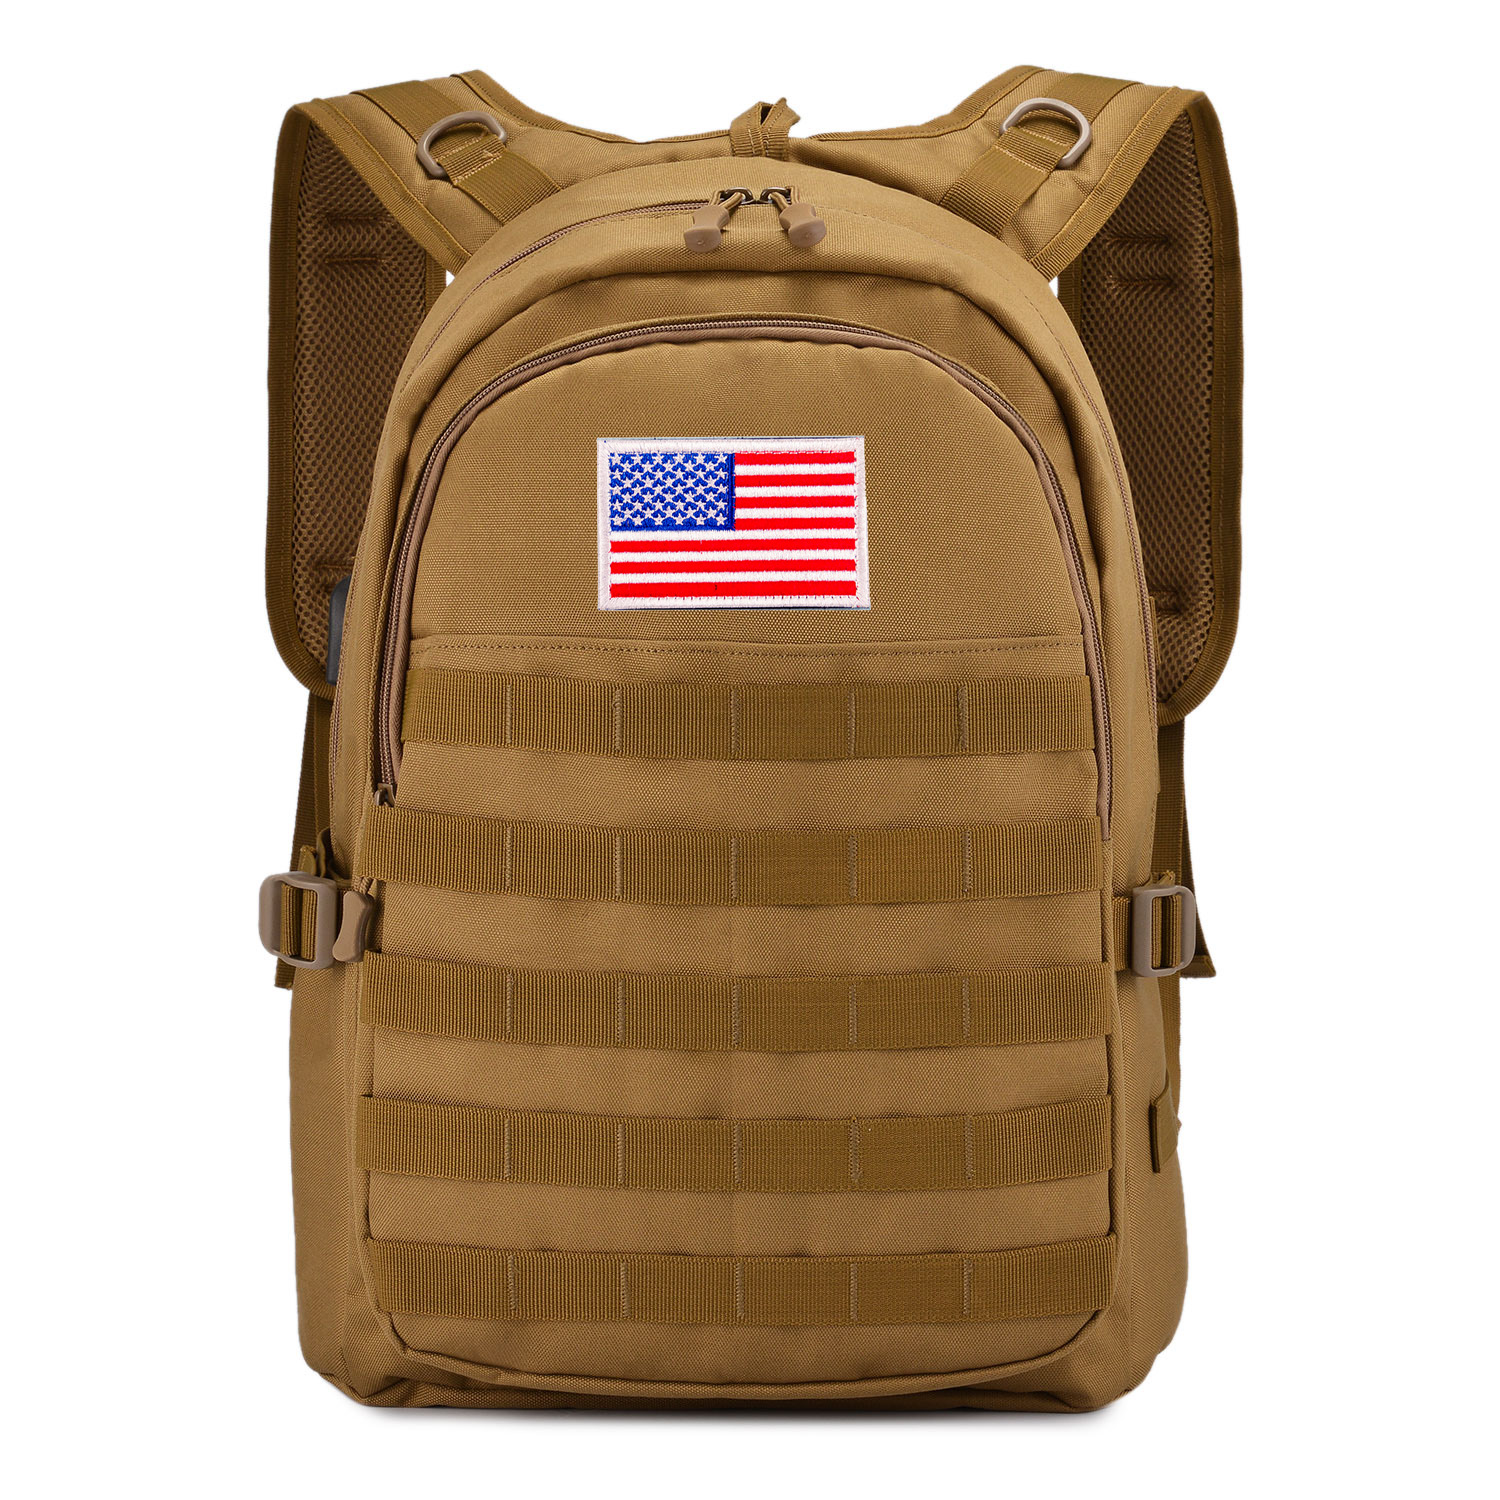 30L-Military-Tactical-Backpack-Molle-USB-Assault-Pack-Hiking-Camping-Rucksack thumbnail 18